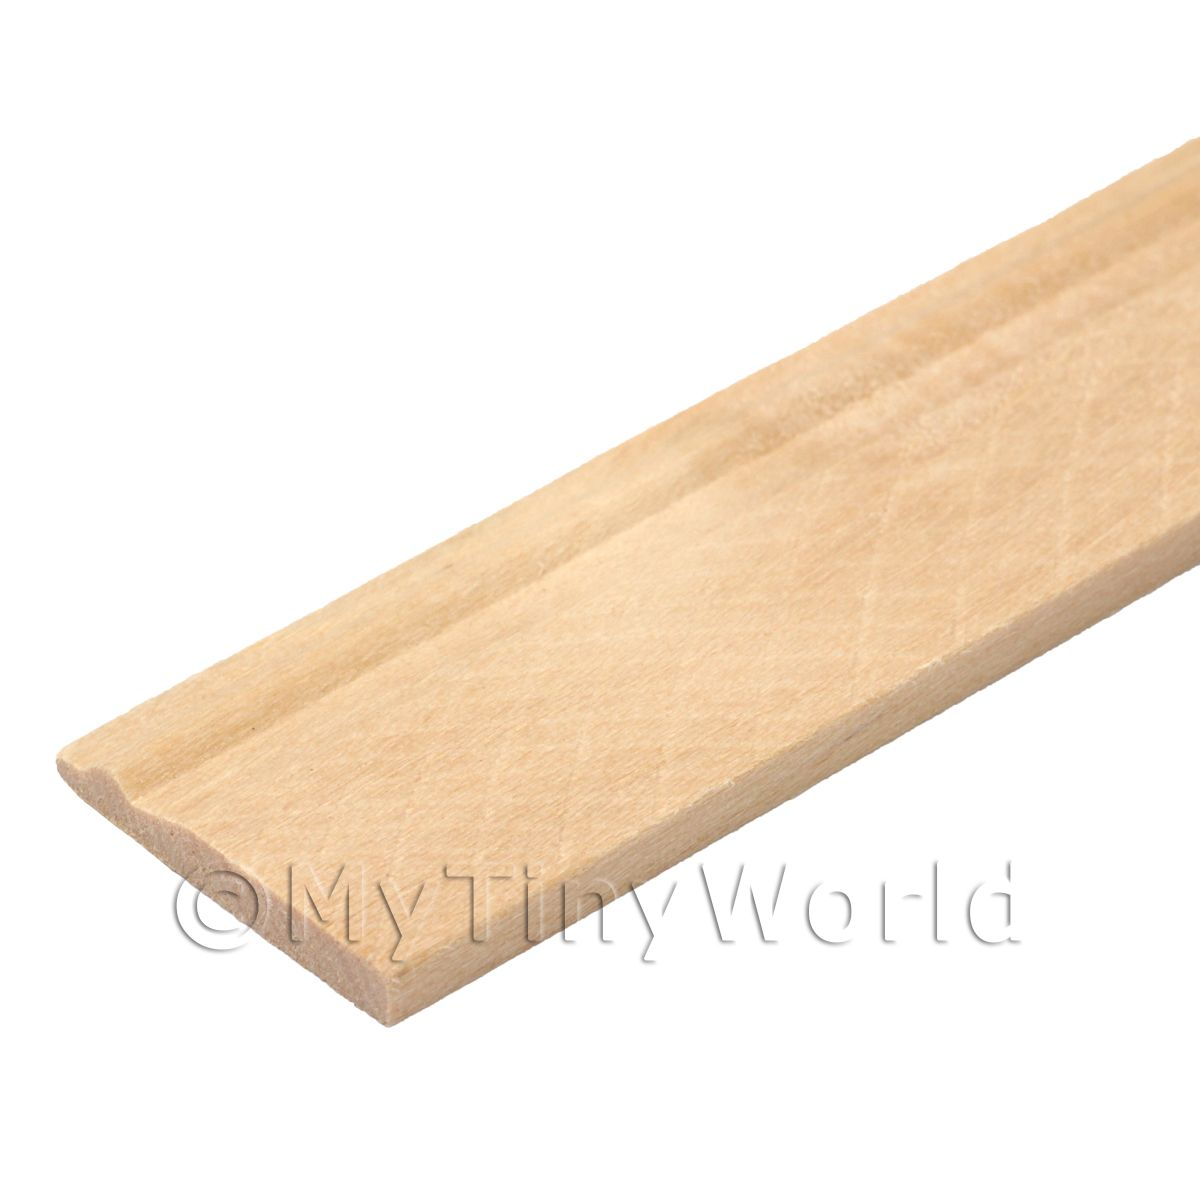 Dolls House Miniature 20mm Wood Skirting Board (Style 4)